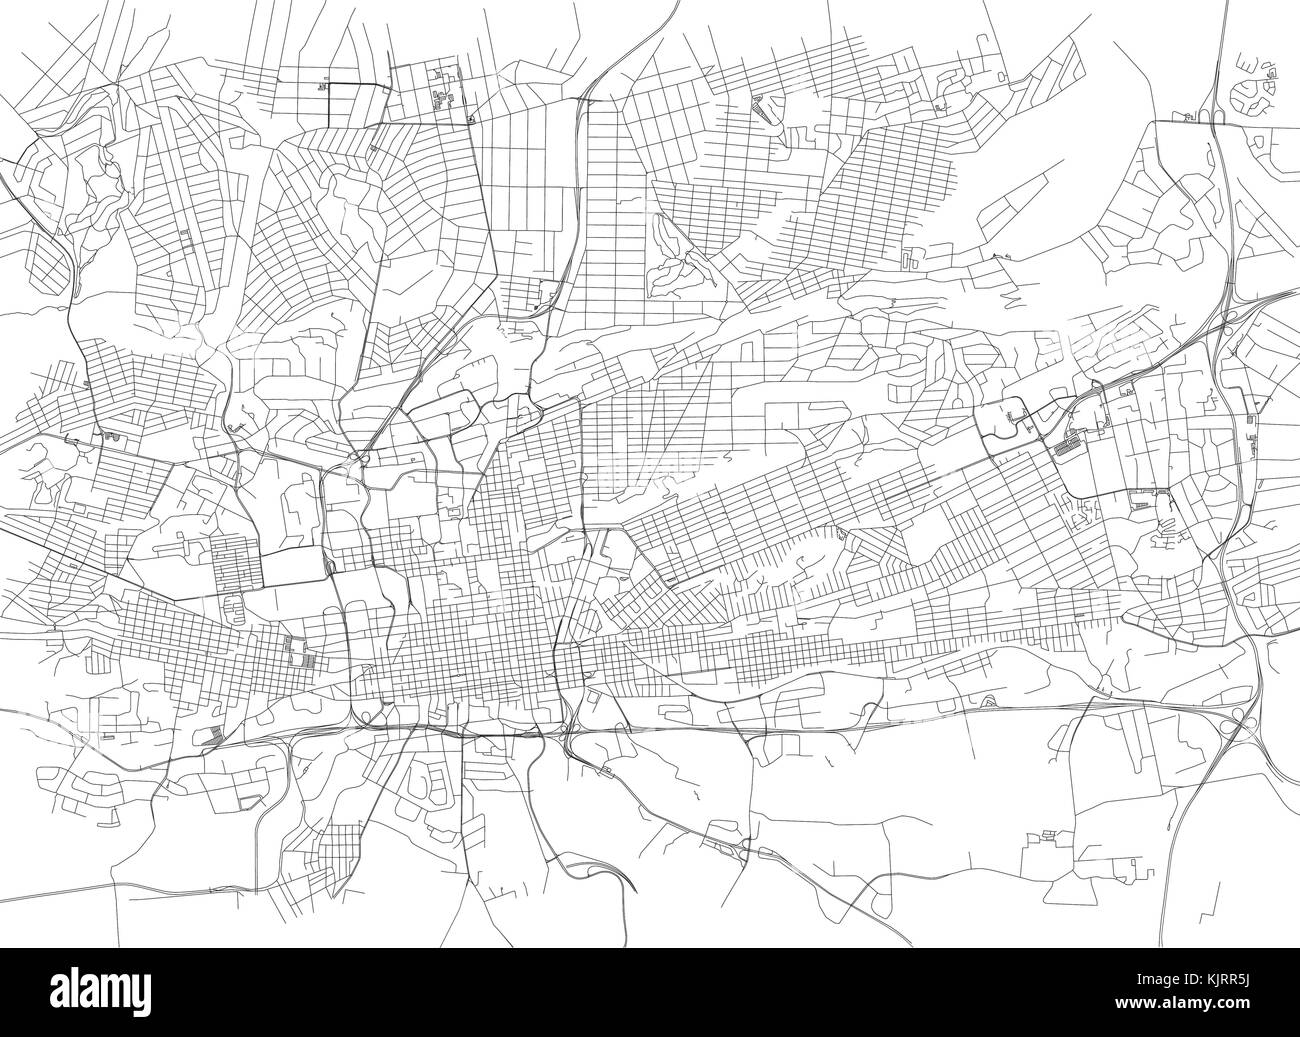 Map Of Africa Johannesburg.Streets Of Johannesburg City Map South Africa Street Map Stock